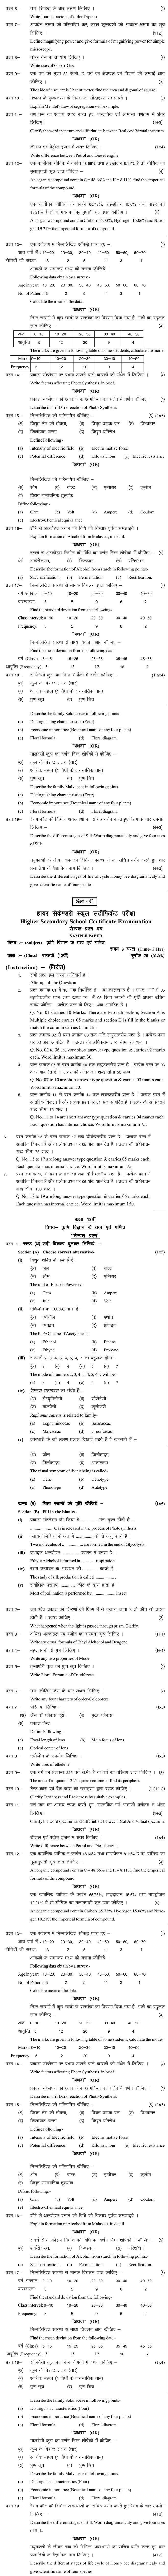 Chattisgarh Board Class 12 Science of farming and maths (Krishi vigyan e tatva evam ganit) Sample Paper